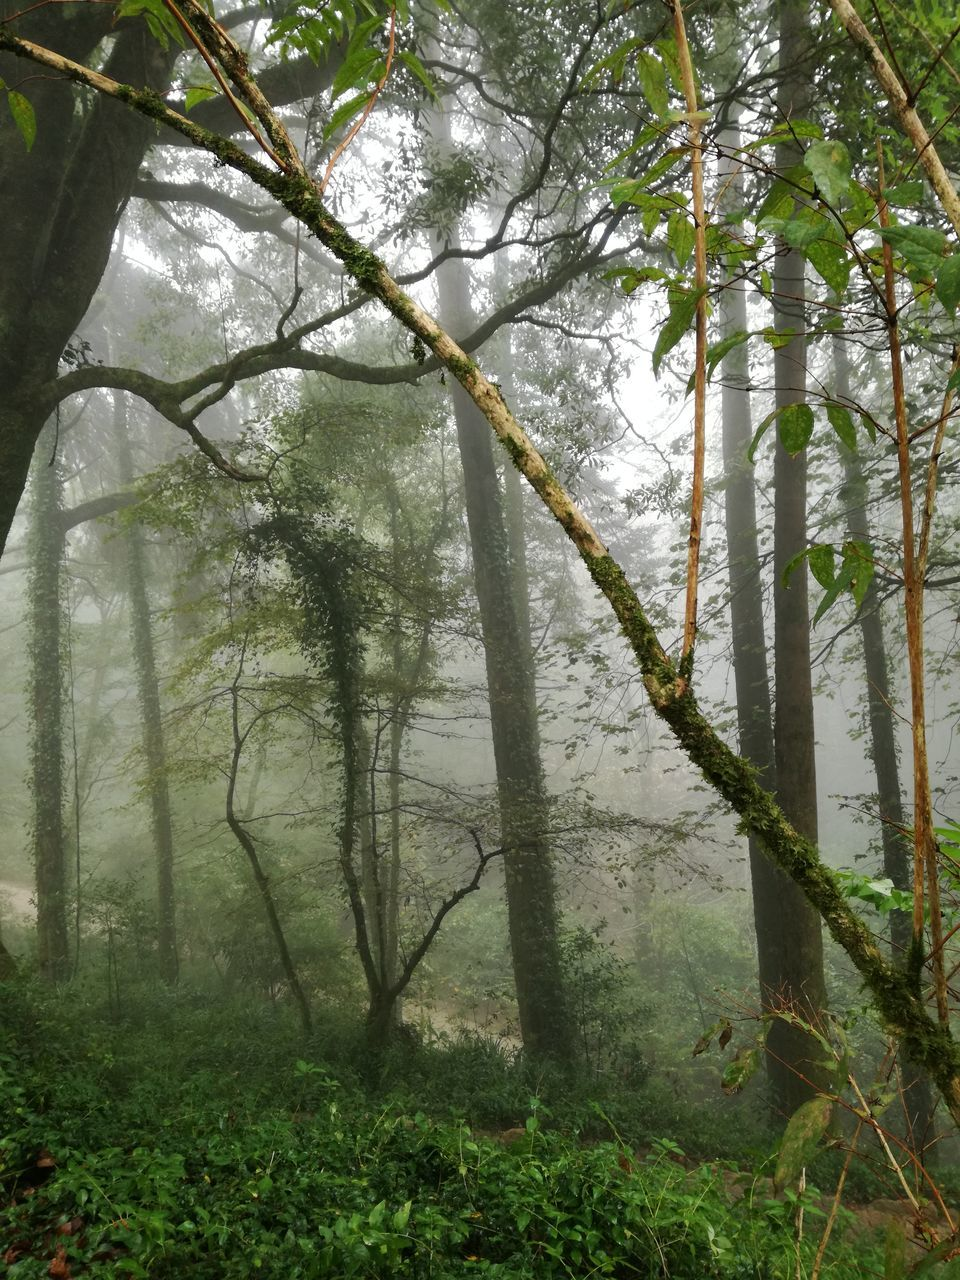 View Of Trees In The Forest During Foggy Weather